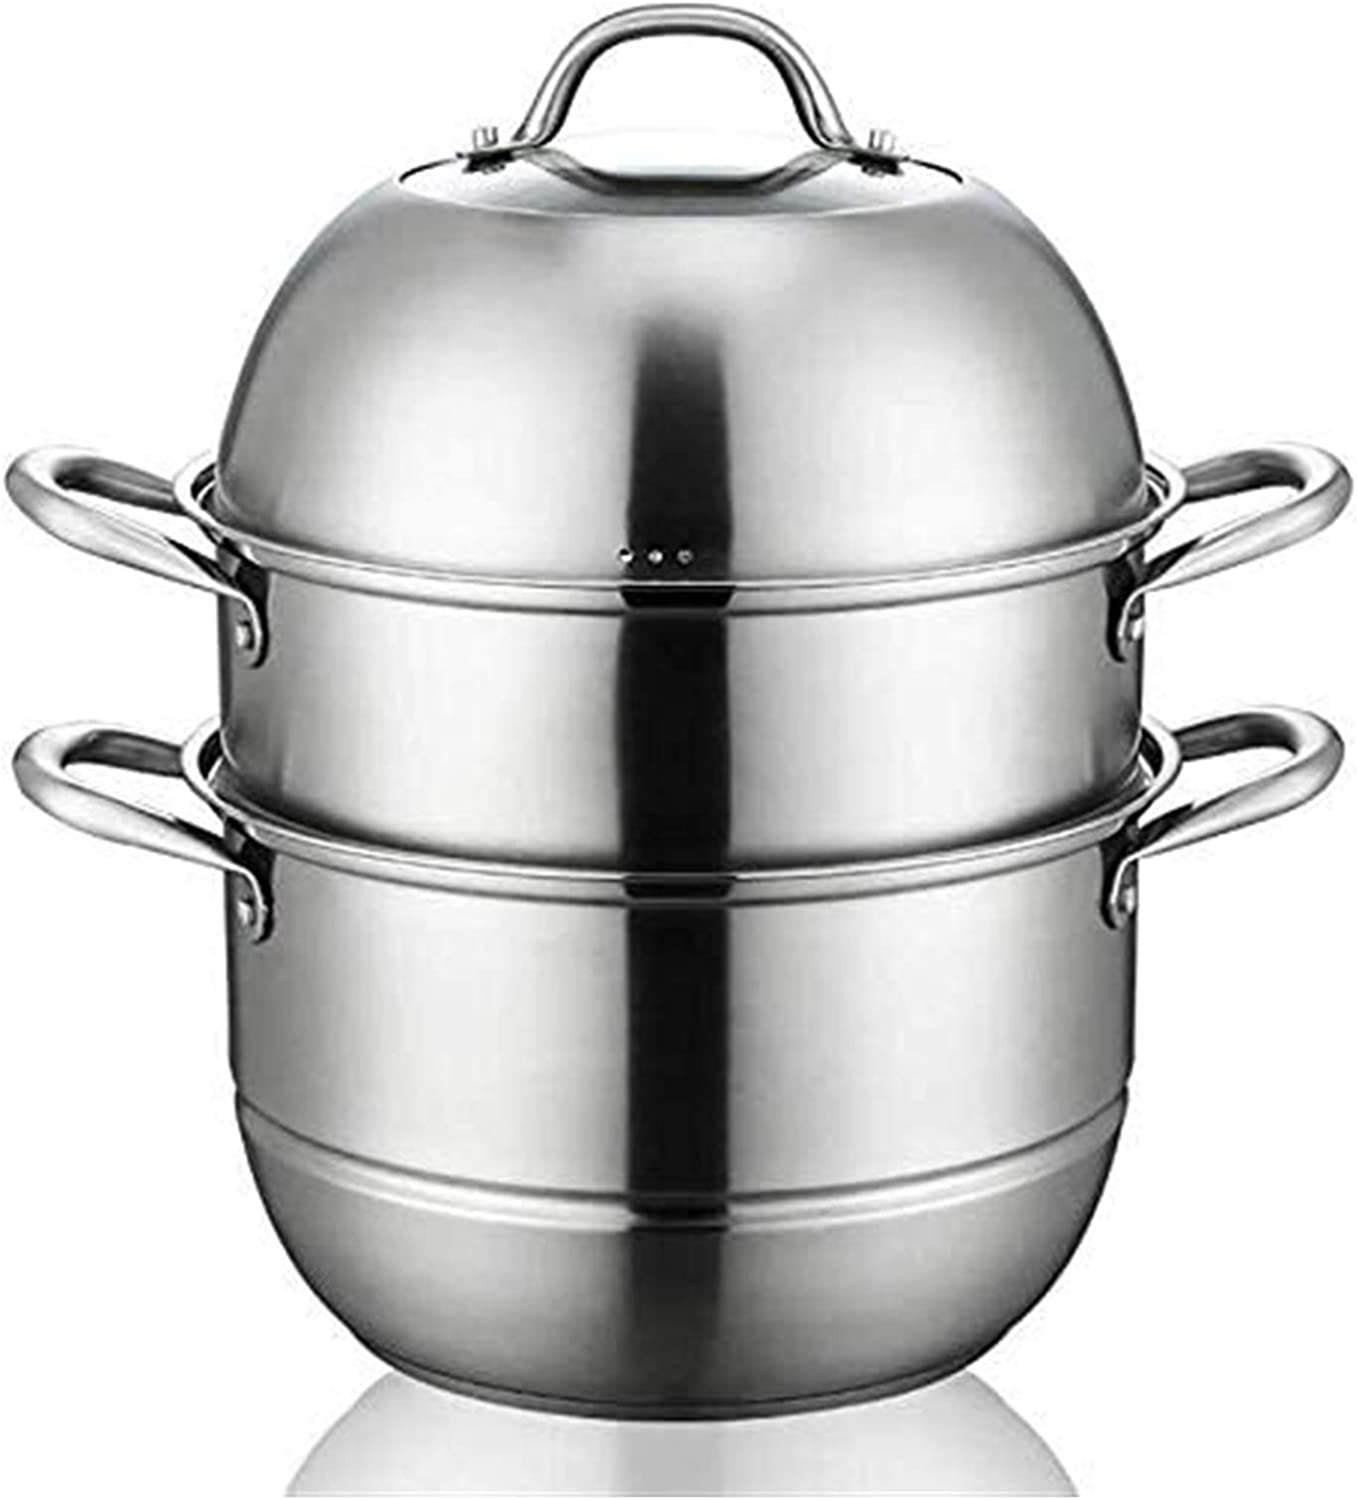 NBBB Steamer Pan Stainless Steel Set Ind Tier Cheap mail order Max 44% OFF specialty store Cooking 3 Steamers